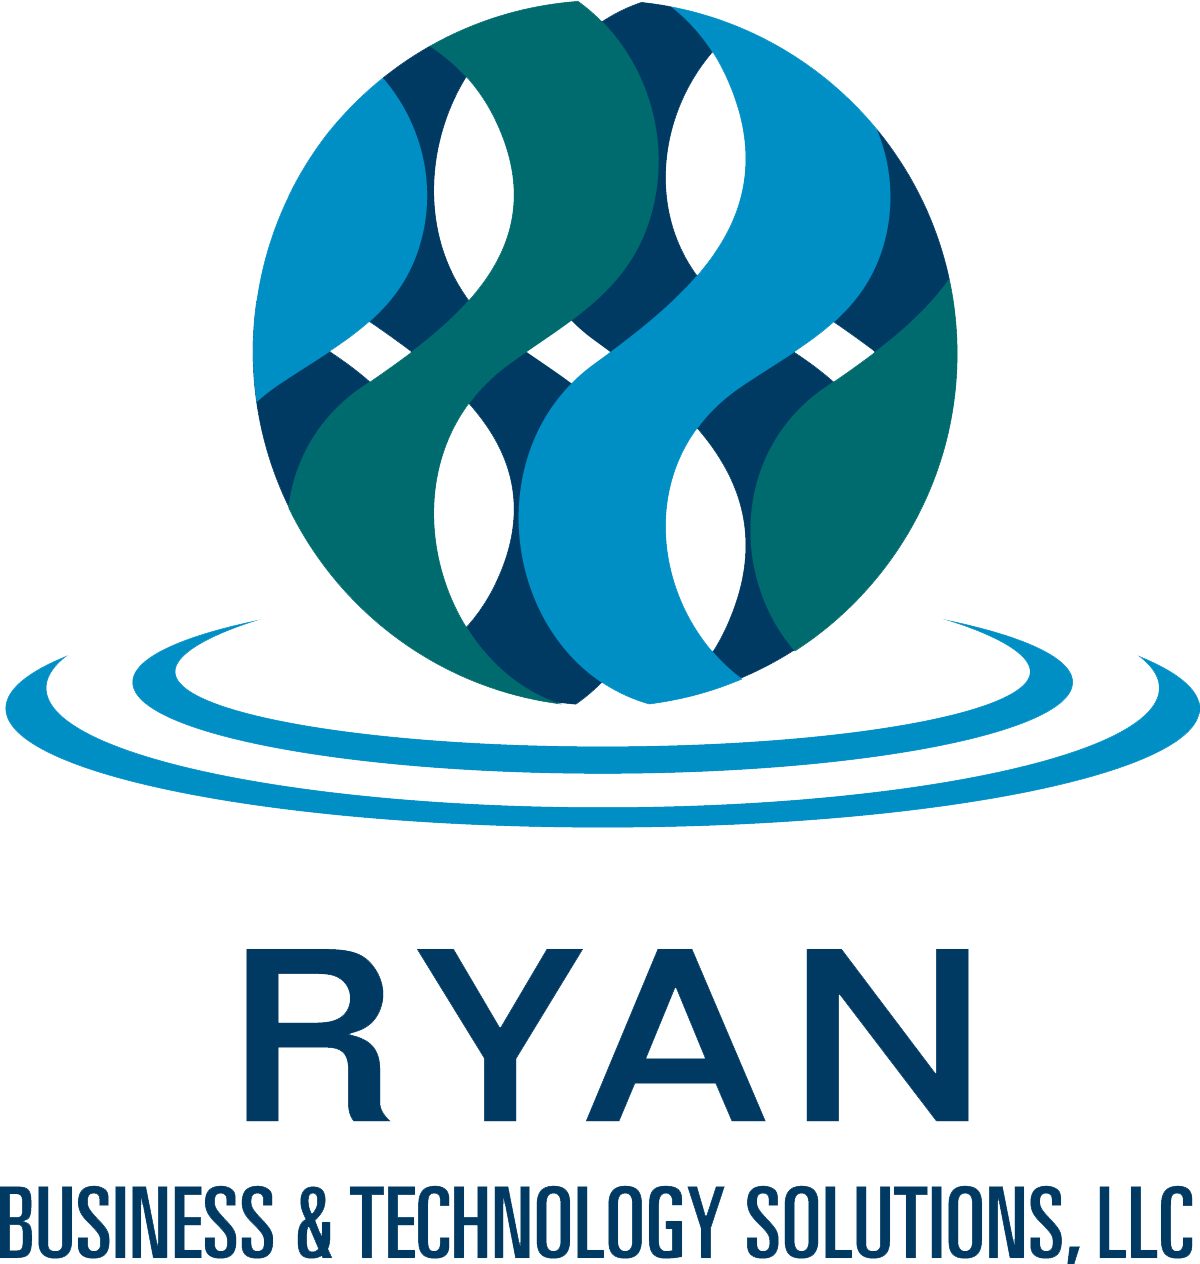 Ryan Business & Technology